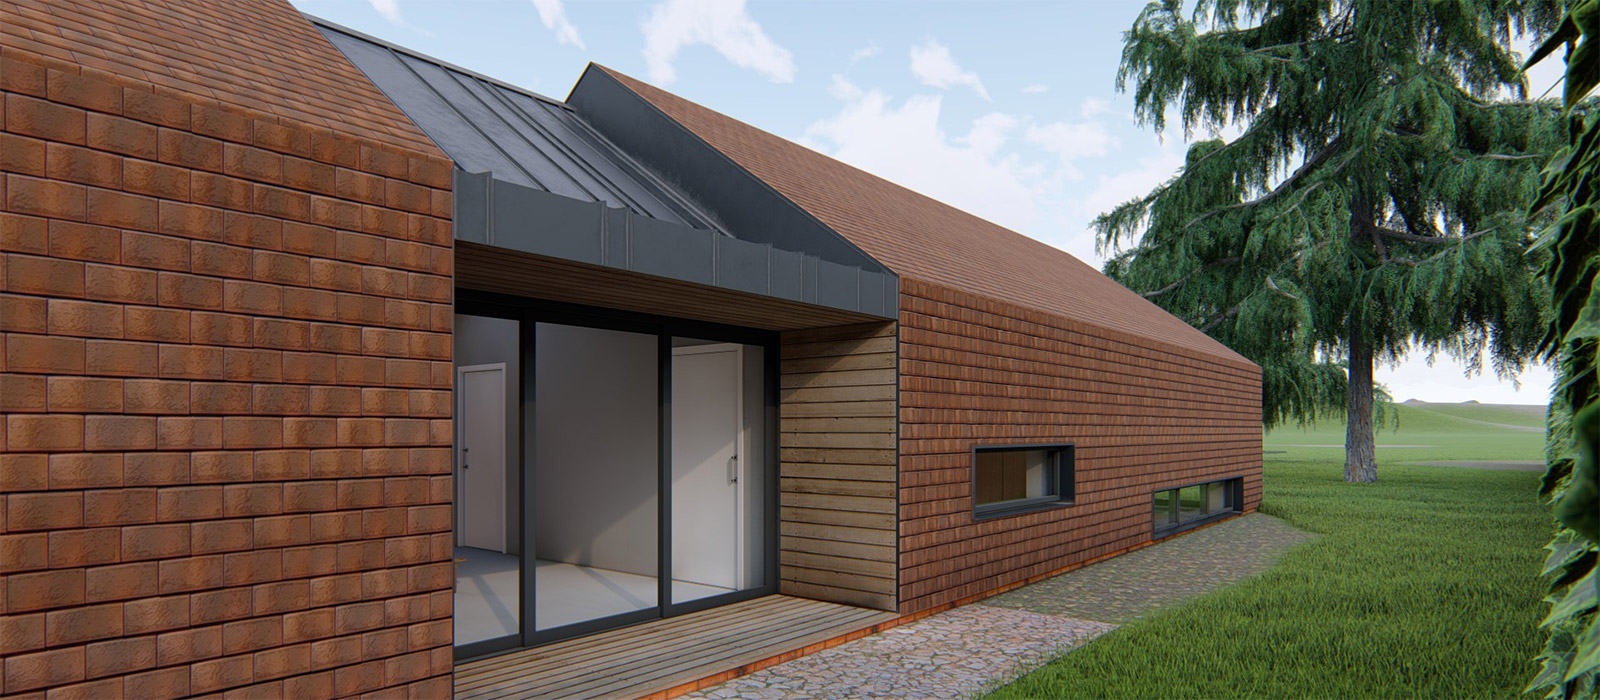 gyd-architecture   3D render showing materials